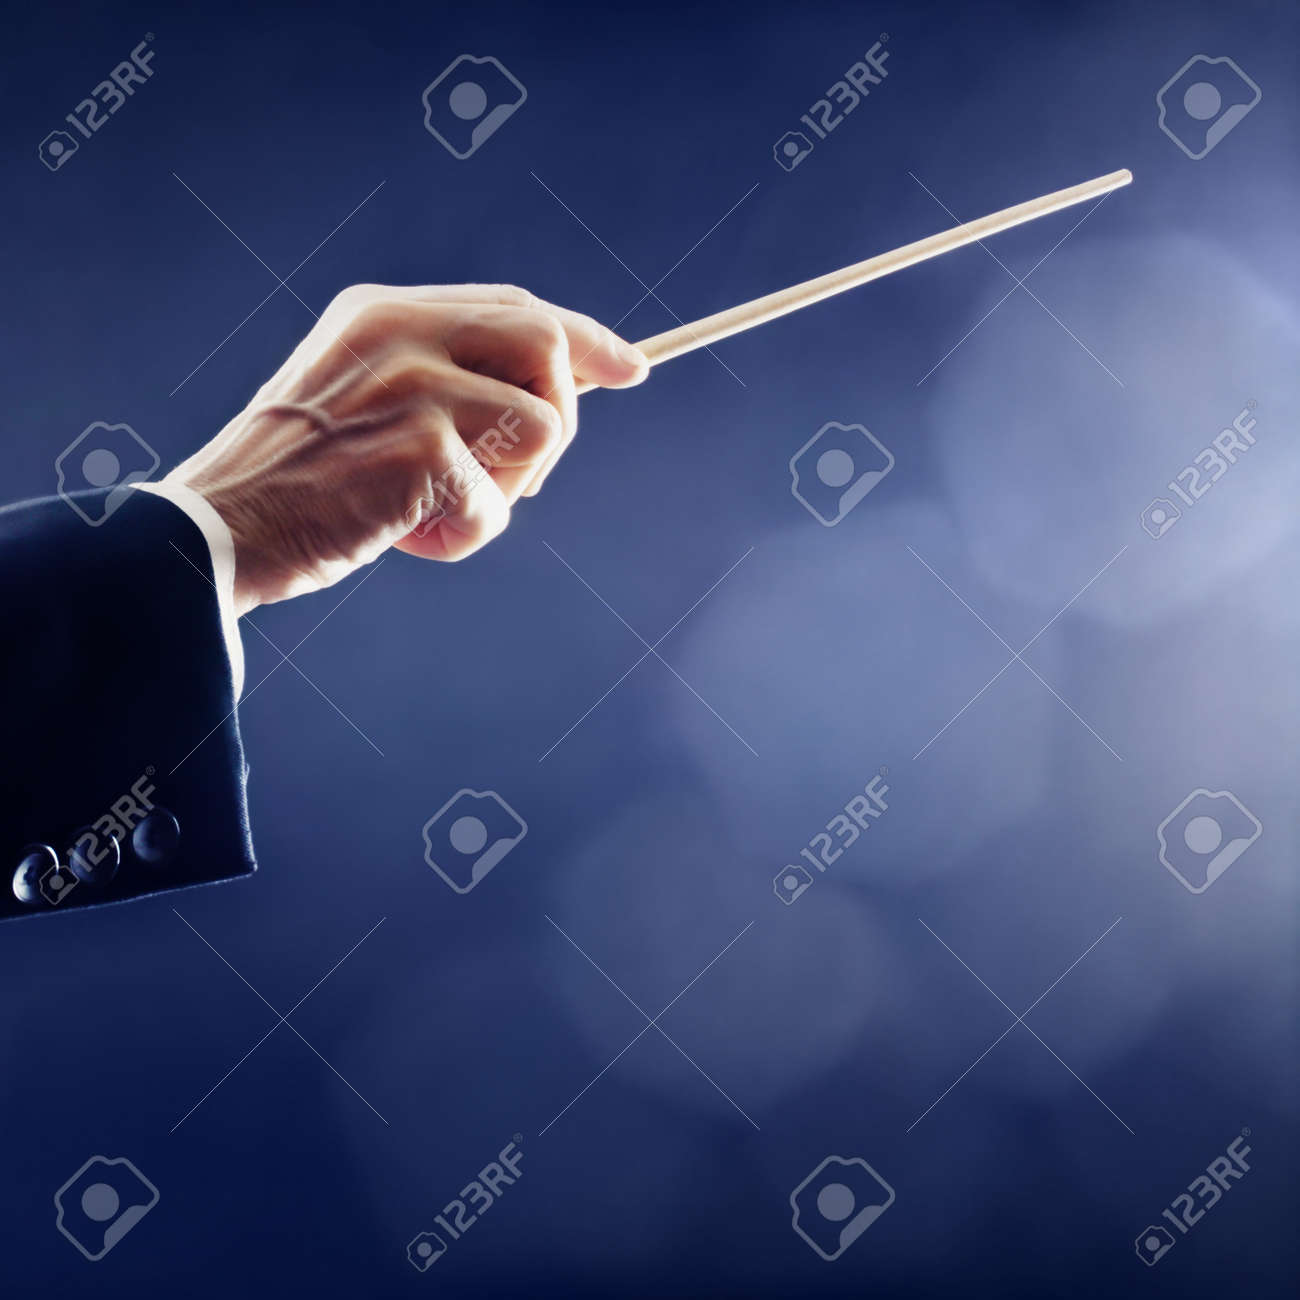 Music conductor hands orchestra conducting Standard-Bild - 20954023